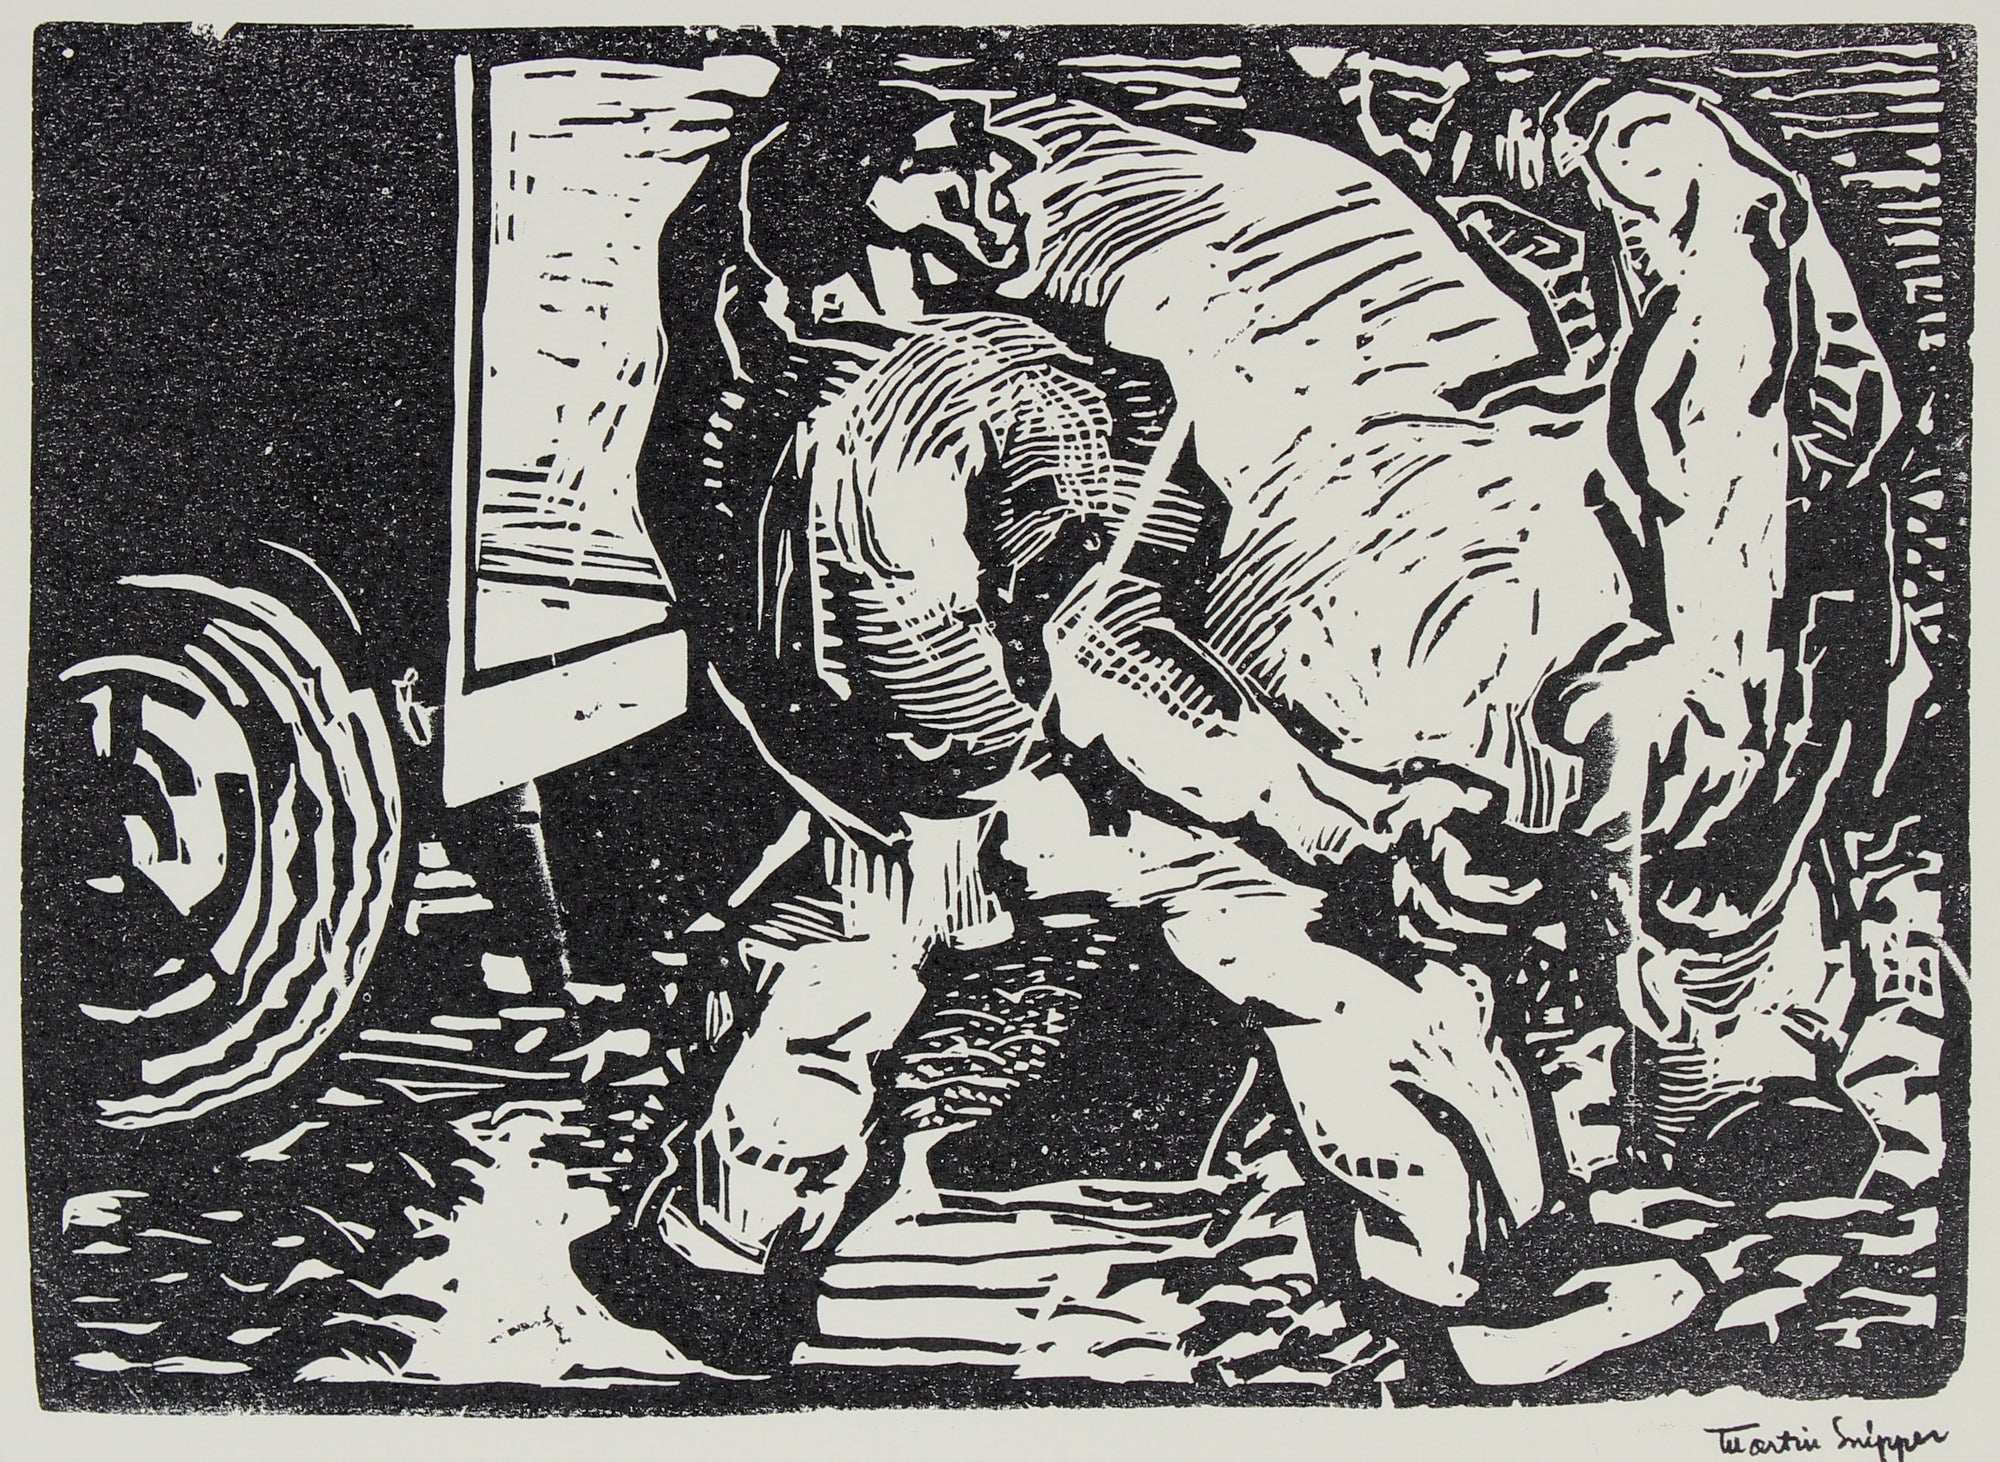 At Work <br>Mid 20th Century Linoleum Block Print <br><br>#48745